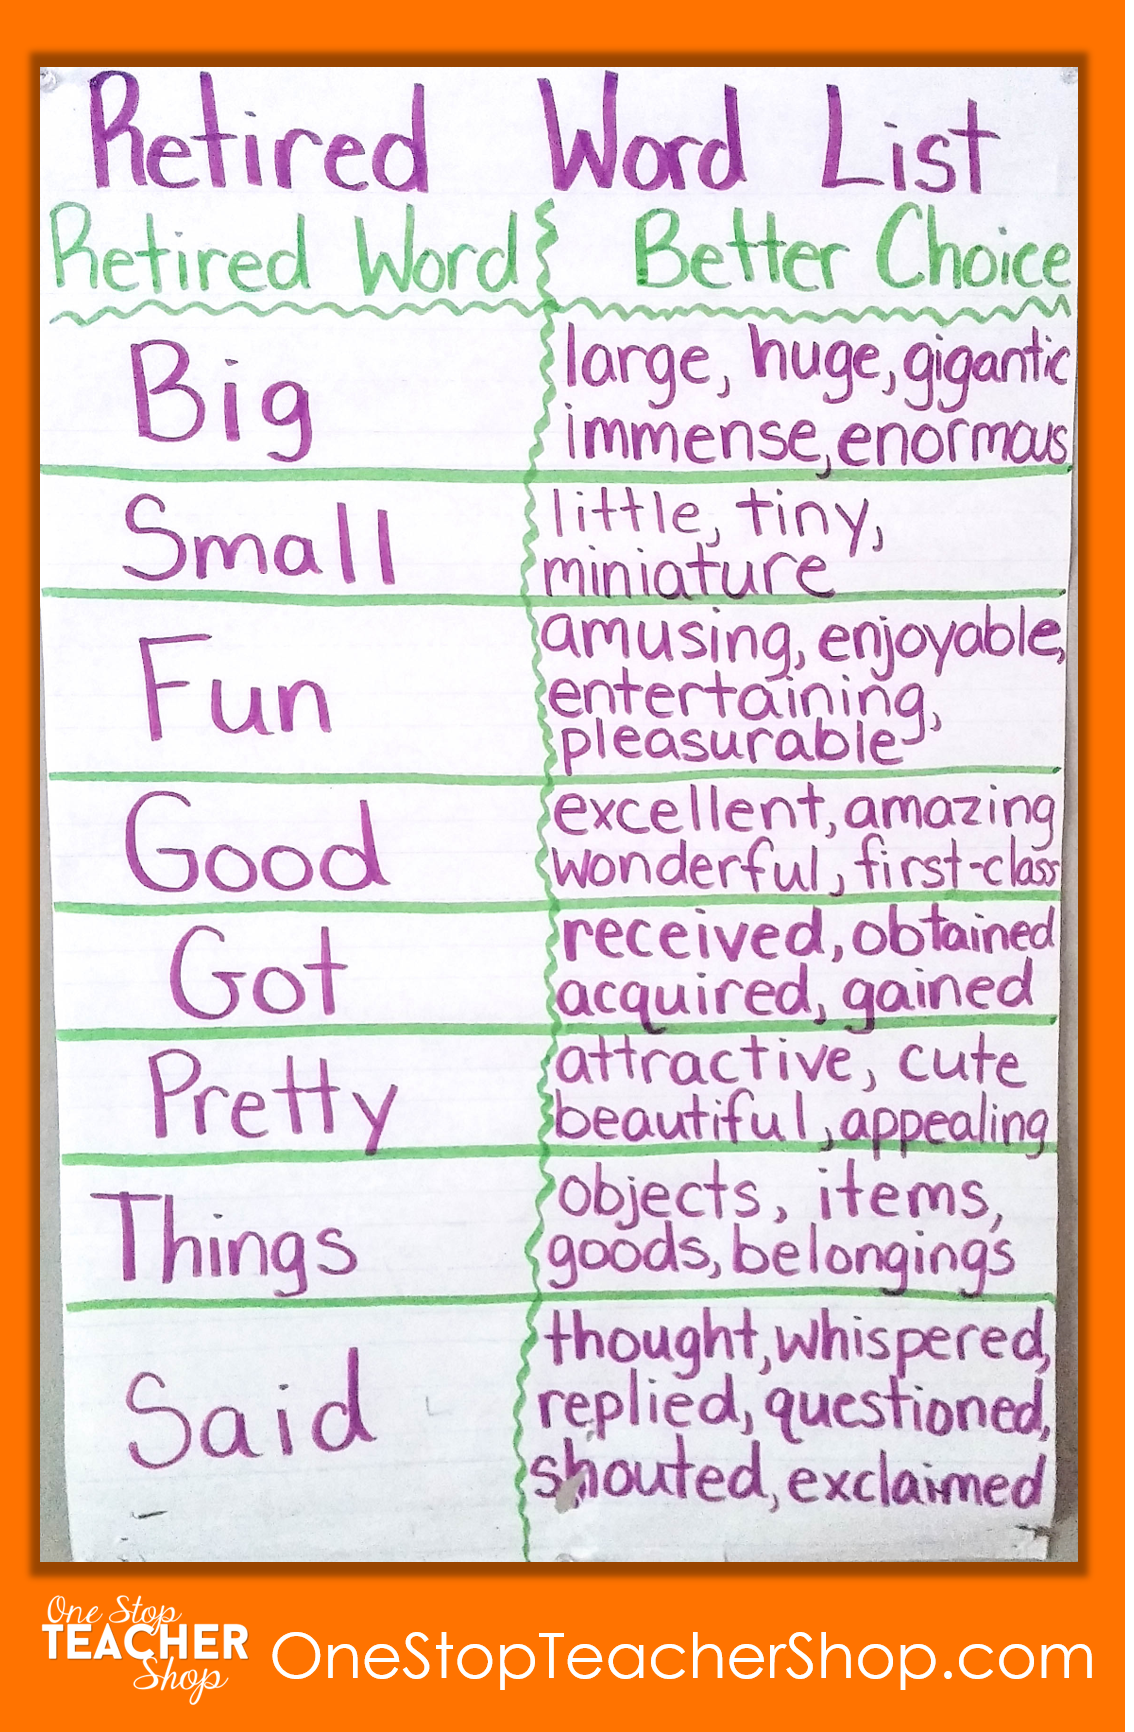 Retired Word List Anchor Chart - Check out my collection of anchor charts for math, reading, writing, and grammar. I love anchor charts even though I'm not so great at making them! Also, get some tips for using anchor charts effectively in your classroom.